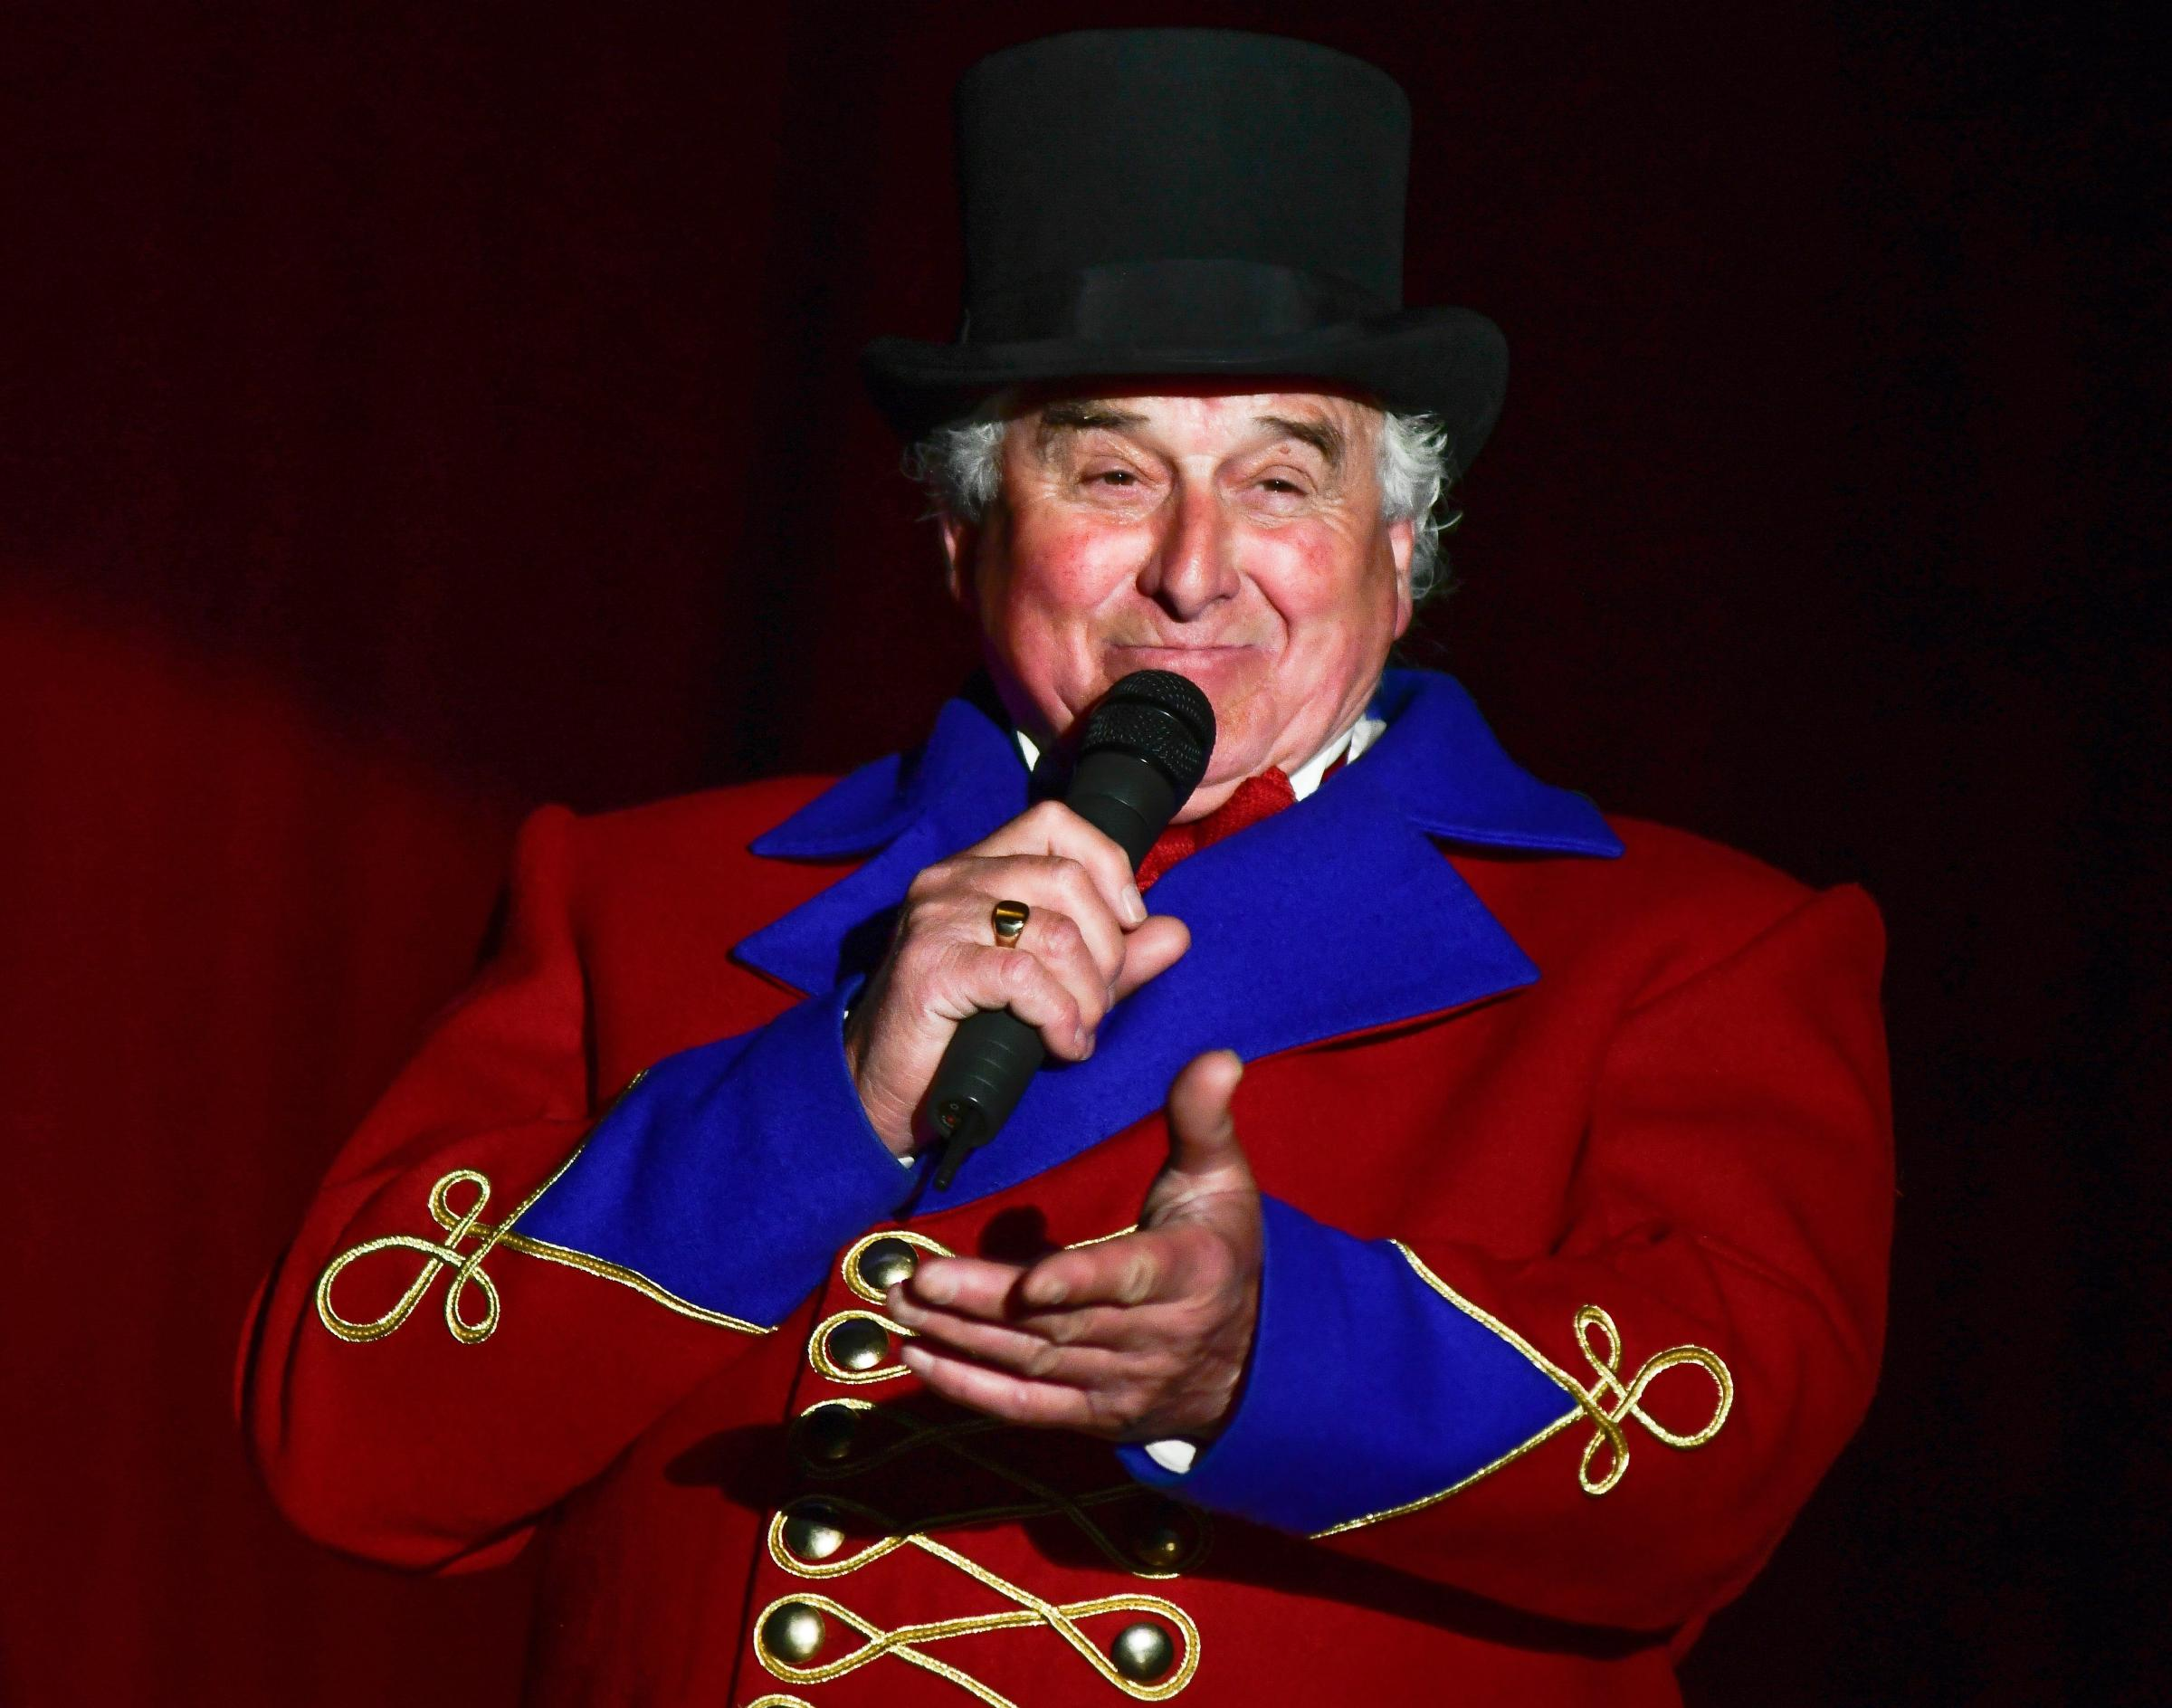 Ringmaster Ernest Santus welcomes friends old and new to his family's circus